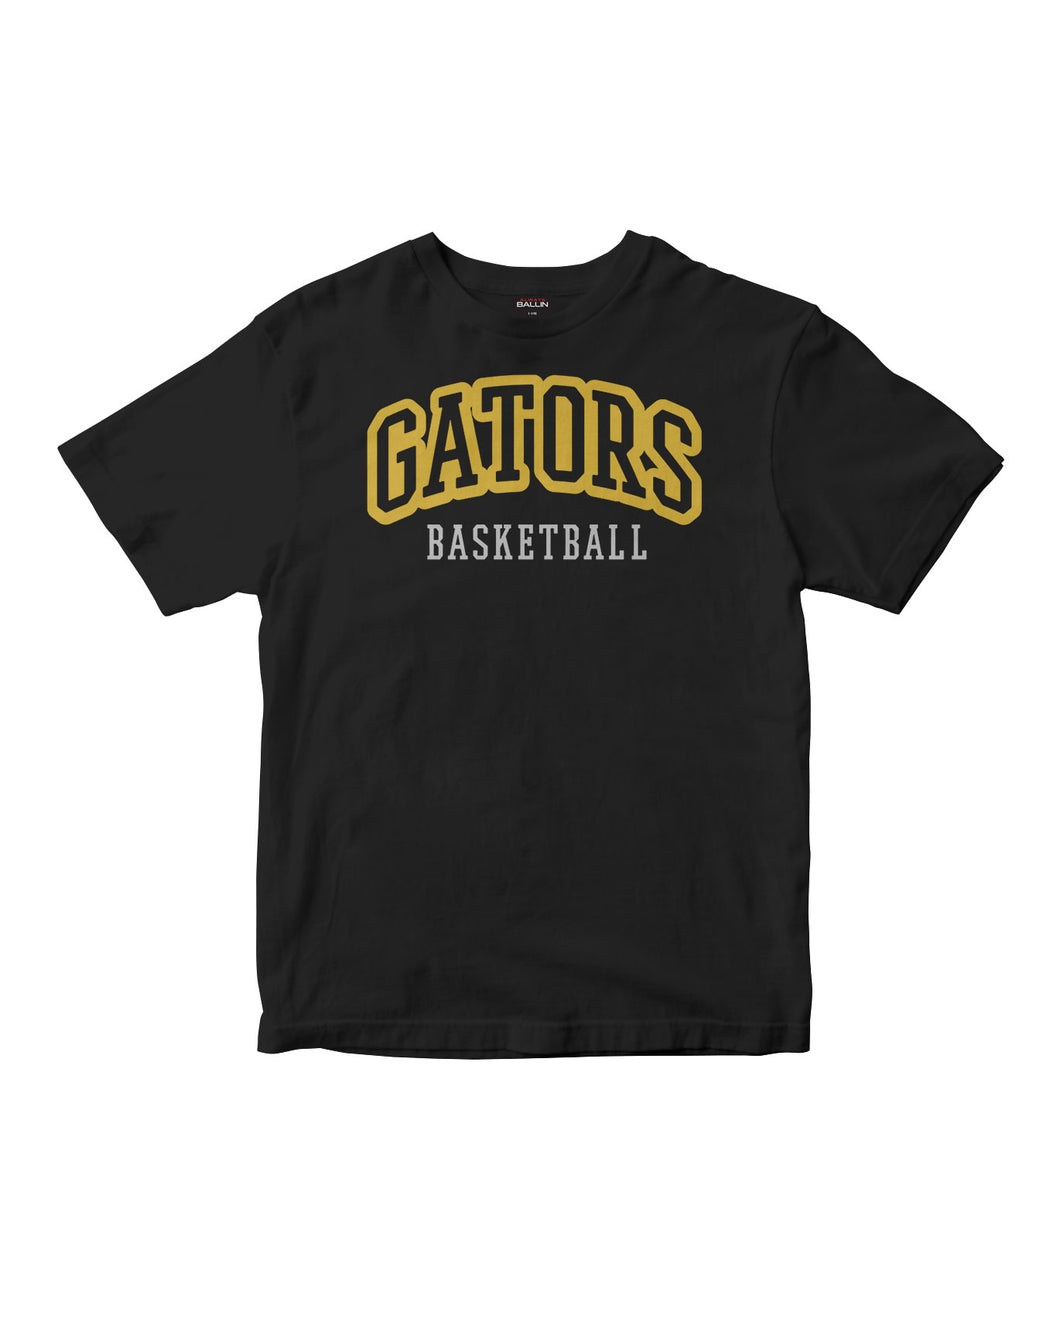 Gators Basketball Kids Black T-Shirt